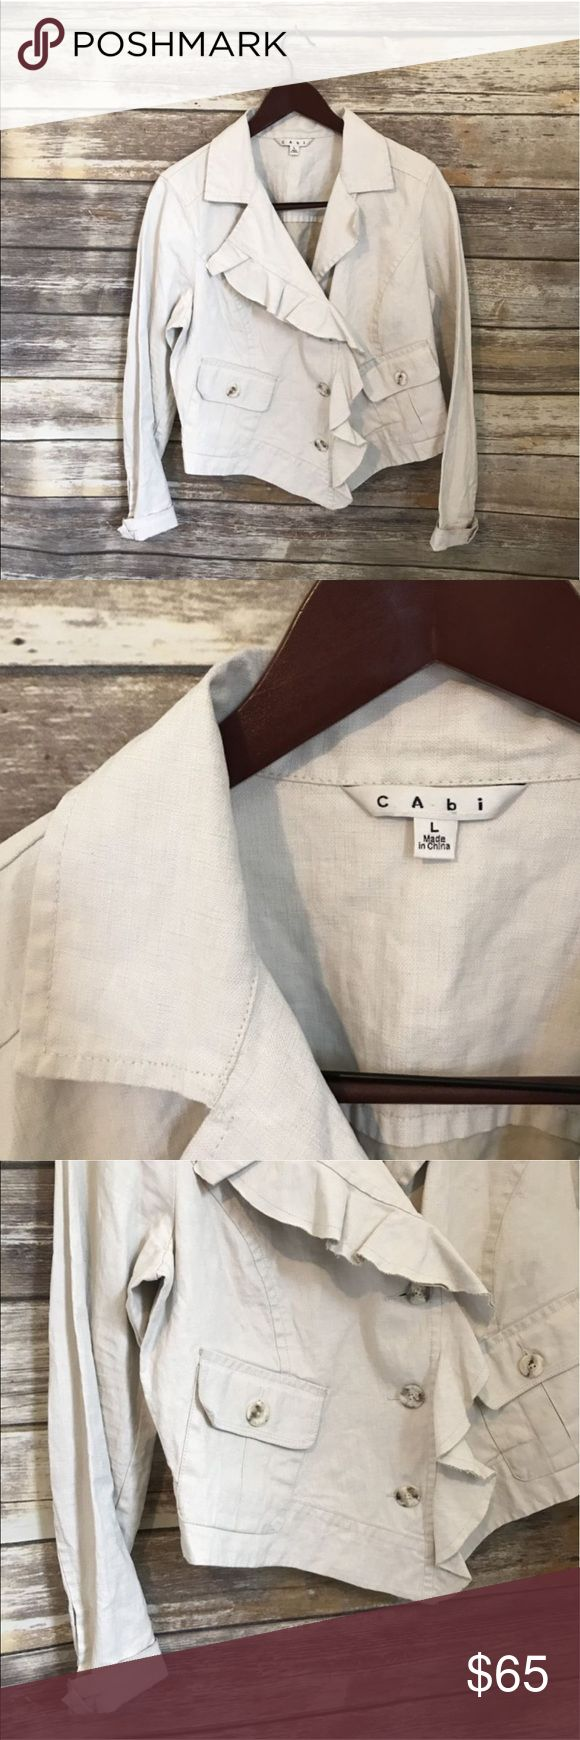 "CAbi Moto Jacket New without tags. Never worn. Size large. Bought for $125.  100% Waxed linen 3 buttons down the front of blazer, 2 buttons on each sleeve and two across the back.  Asymmetrical front with ruffle detail. Two button front pockets.  Measurements 20"" Length (Mid-back neckline to hem) 21.5"" Armpit to armpit when buttoned and laying flat. CAbi Jackets & Coats"